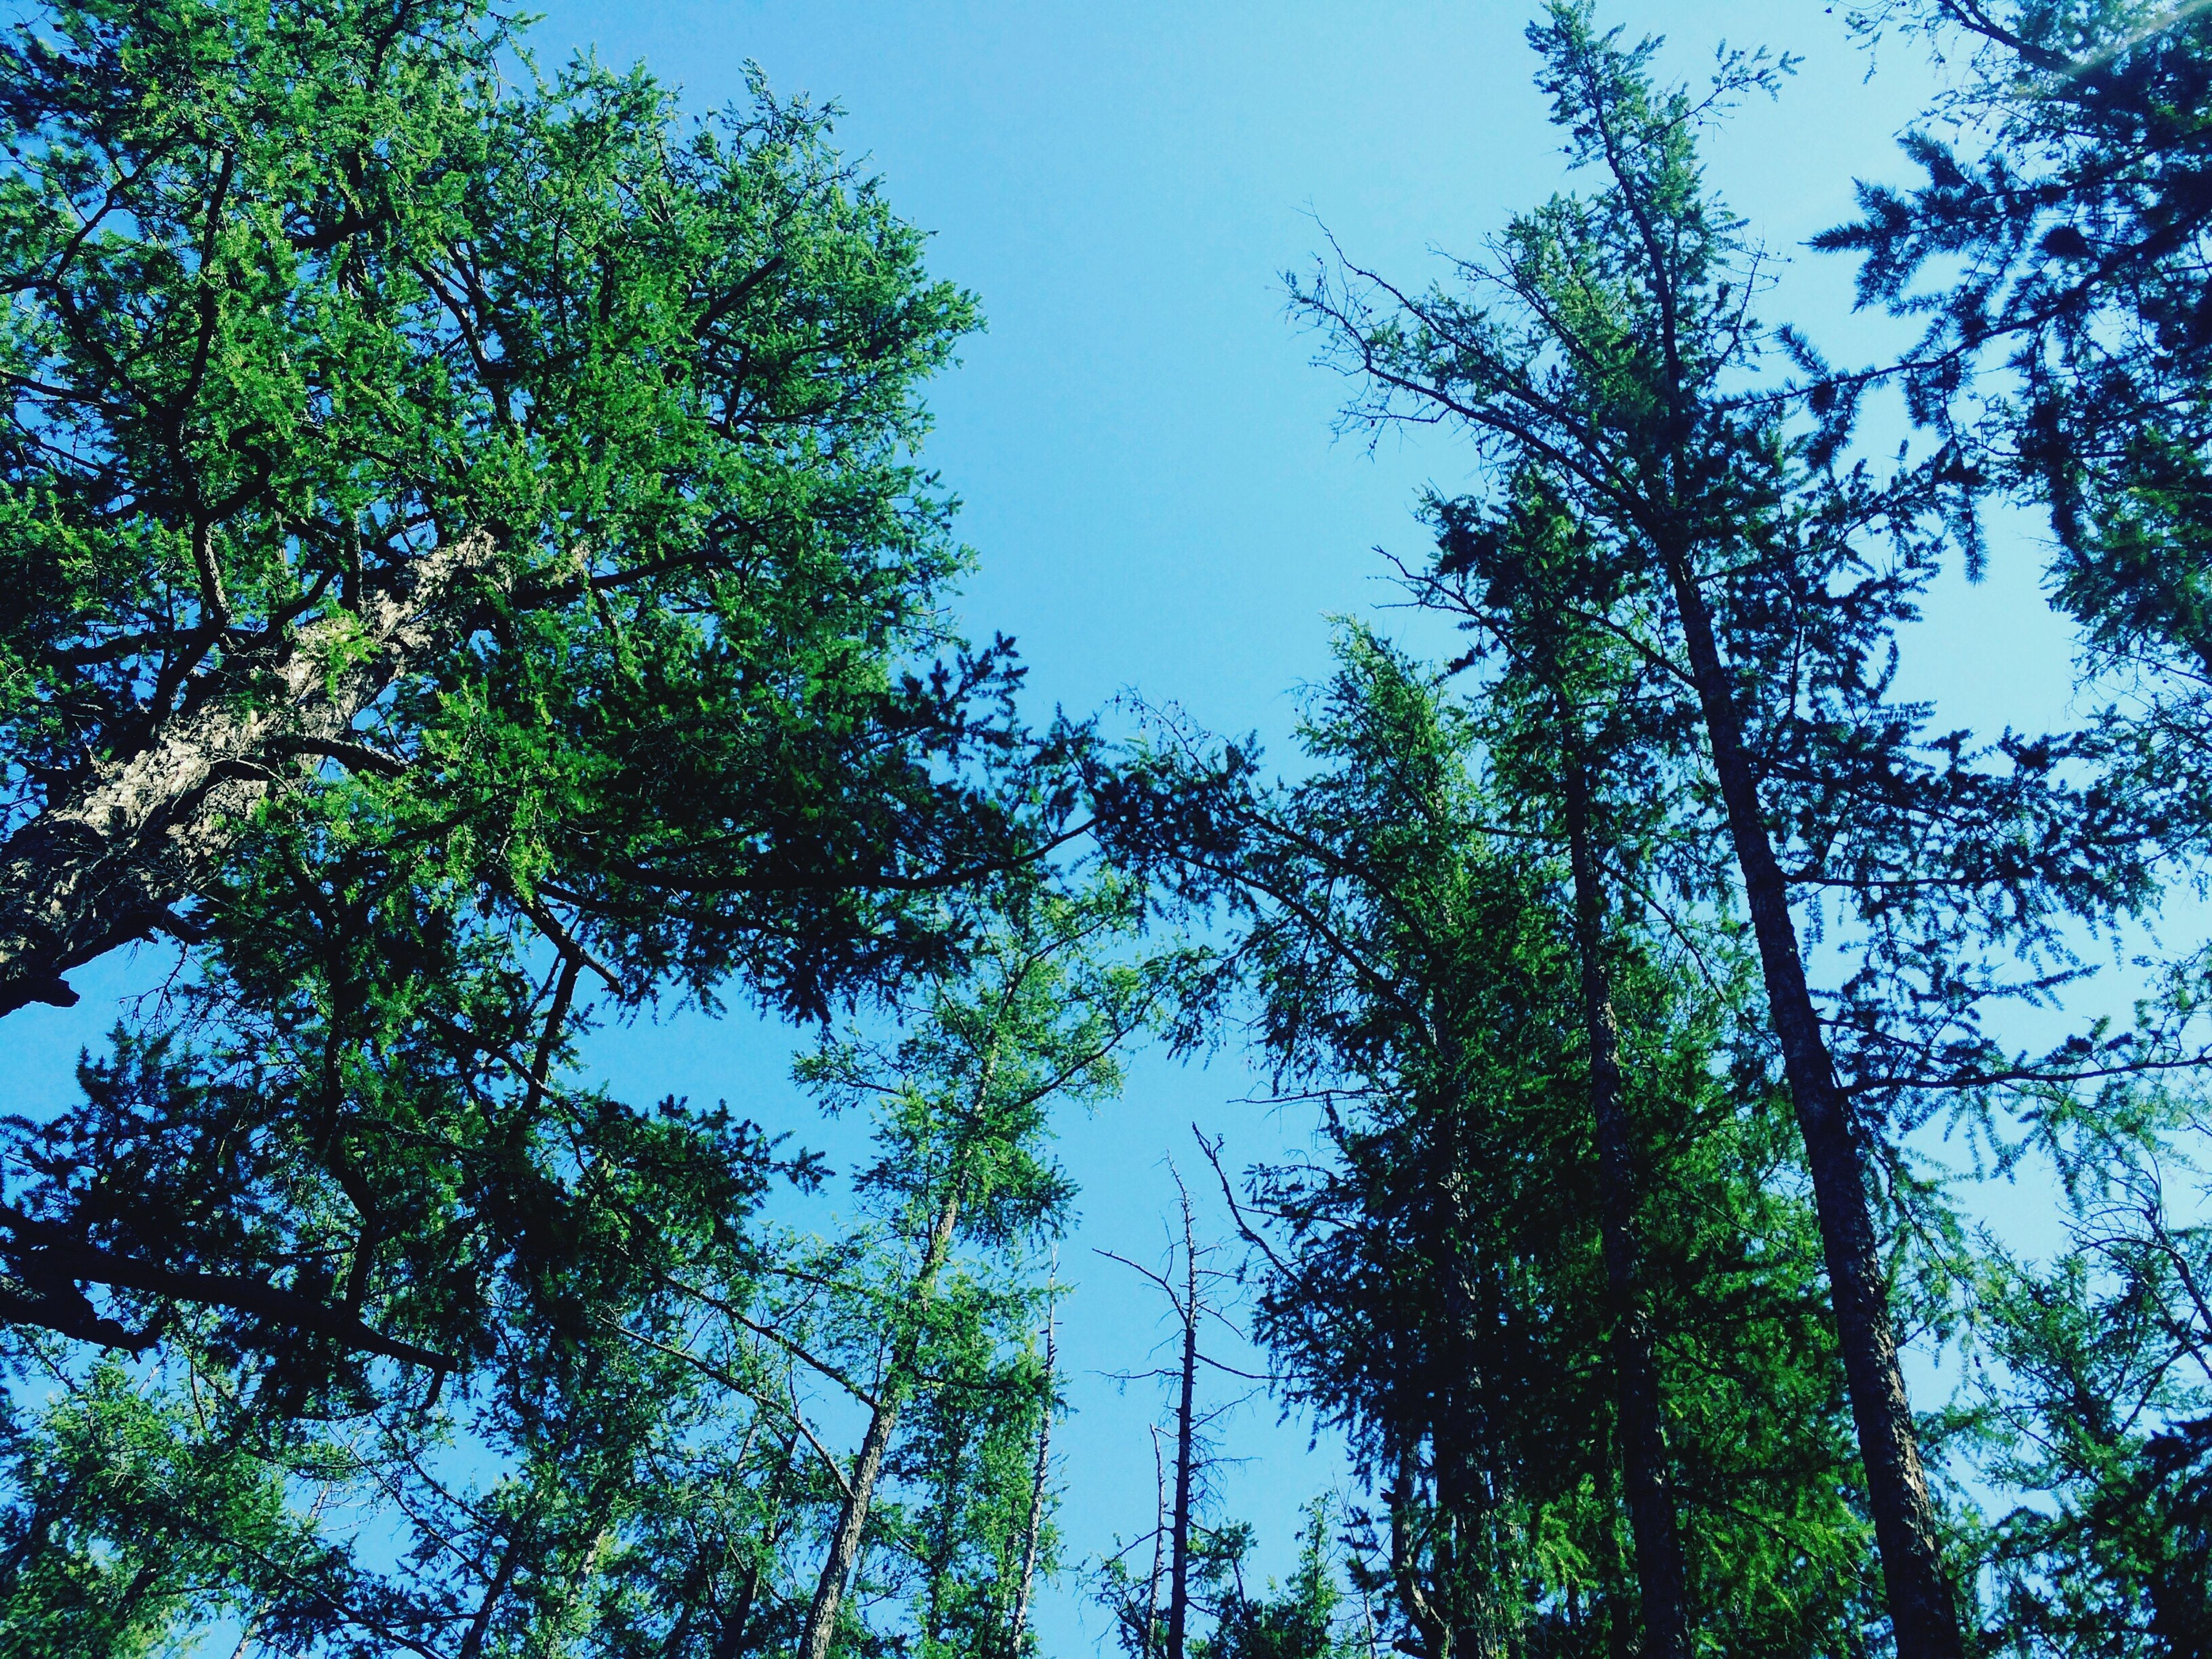 tree, low angle view, growth, tranquility, nature, blue, sky, green color, beauty in nature, day, tree trunk, outdoors, no people, tranquil scene, scenics, lush foliage, tall - high, treetop, high section, green, idyllic, non-urban scene, backgrounds, sunny